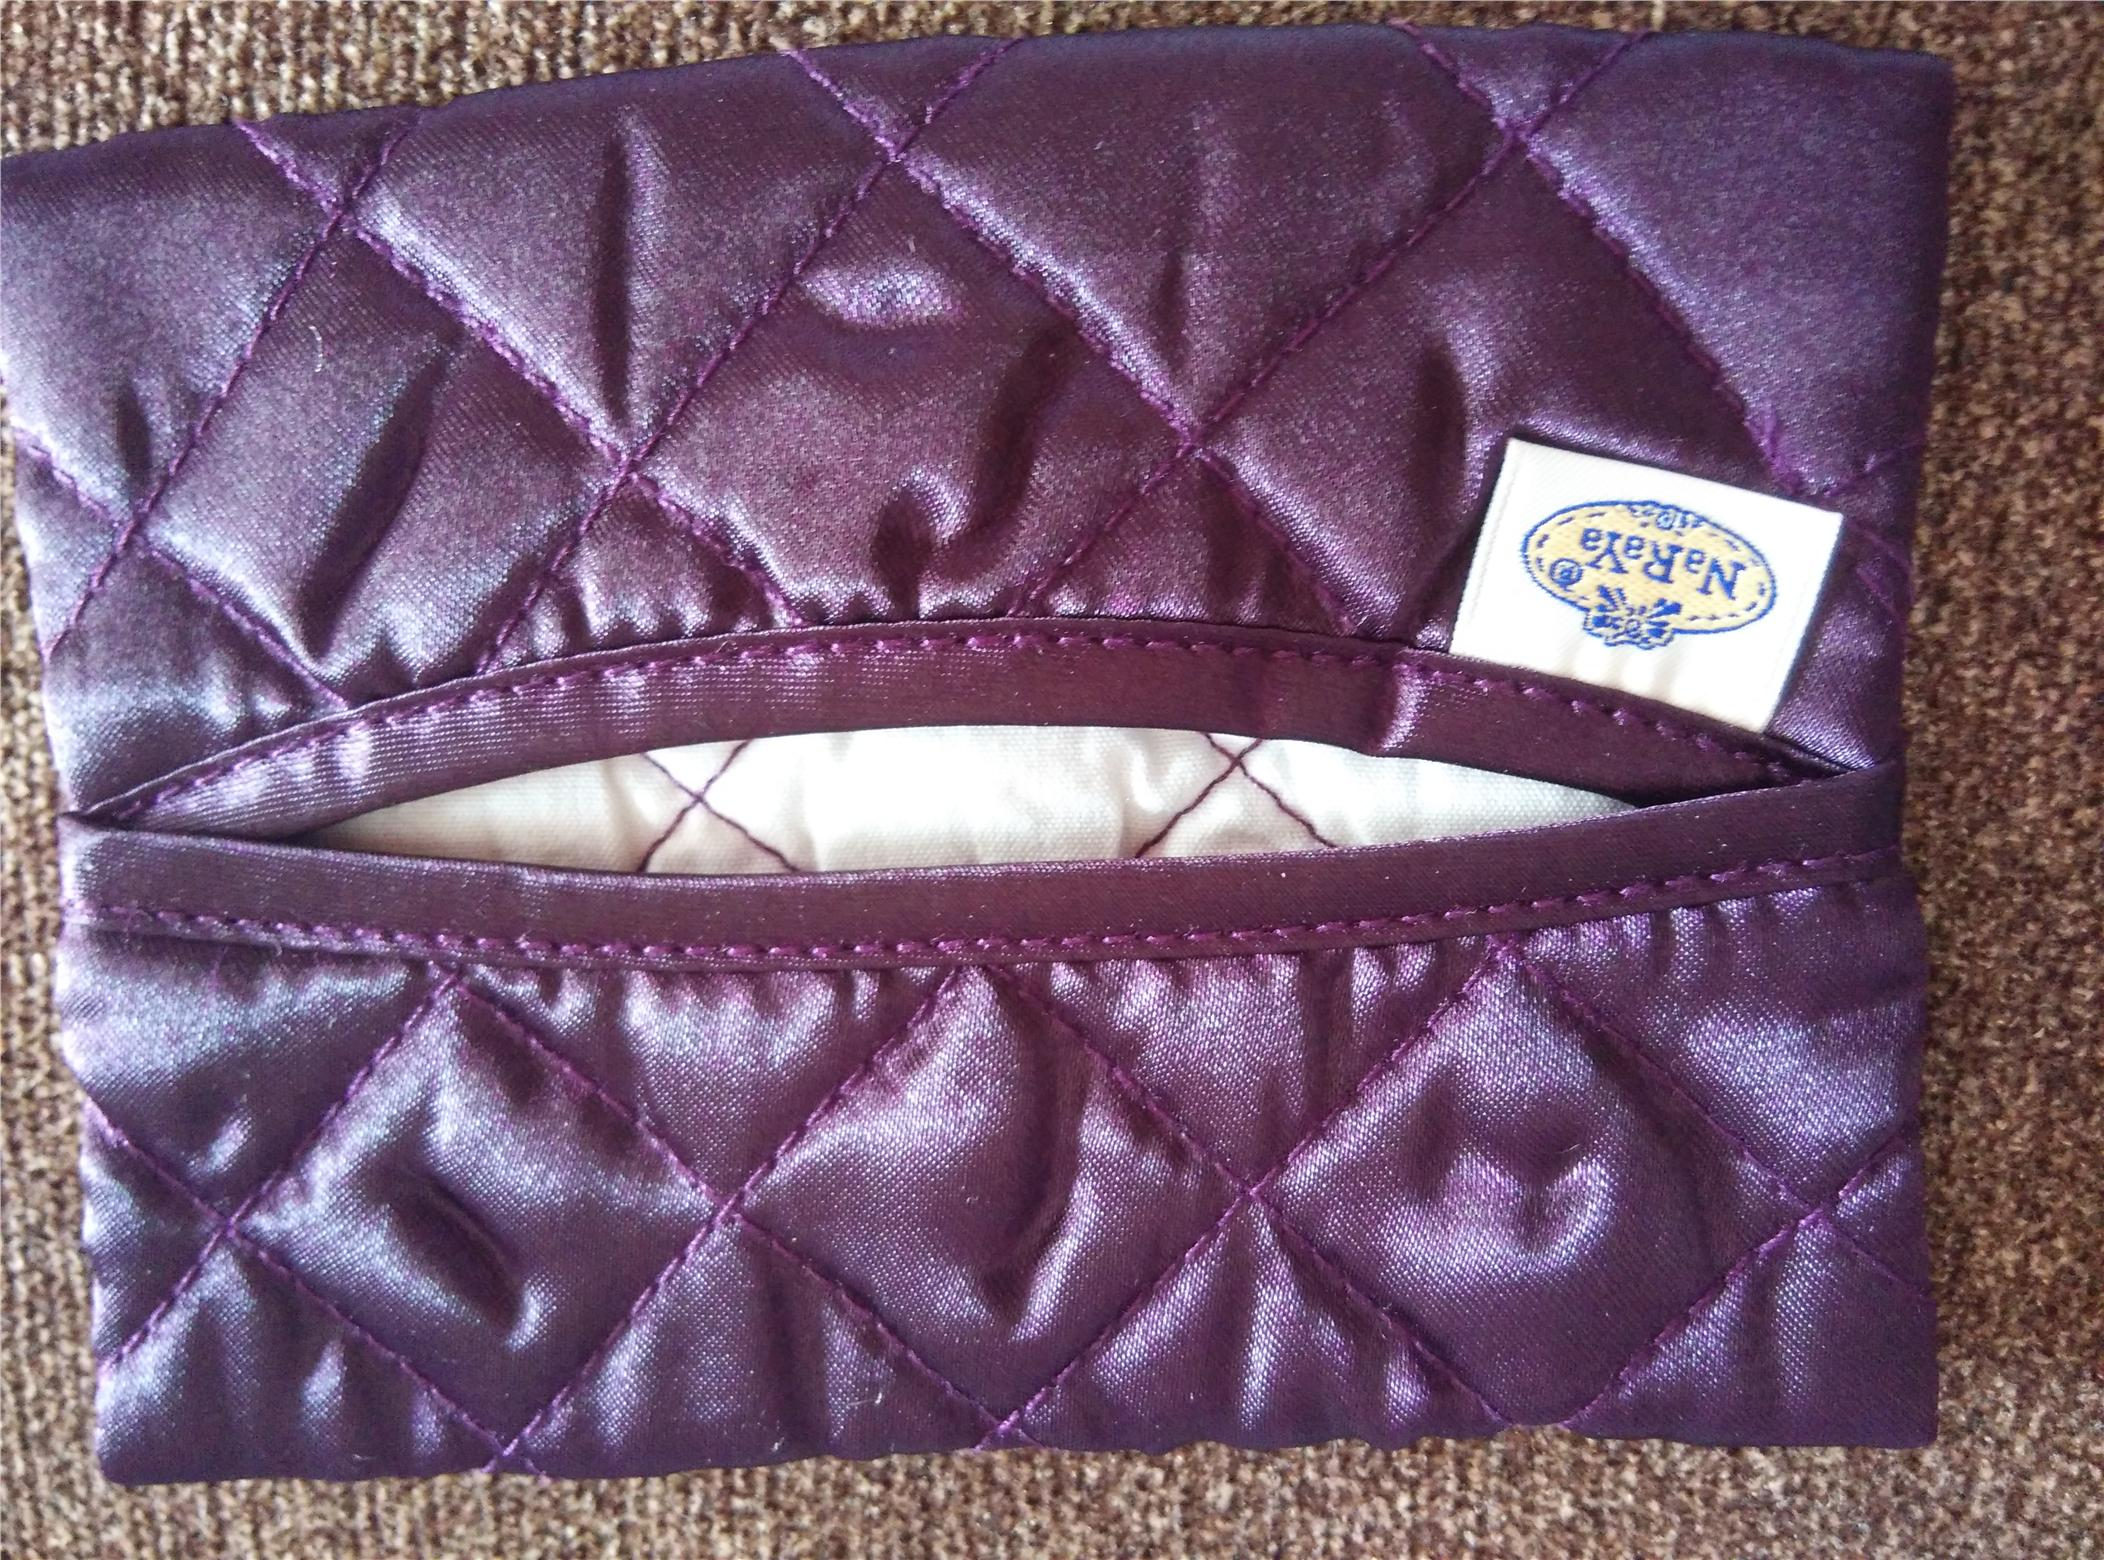 ORIGINAL NARAYA TISSUE BAG - Purple color